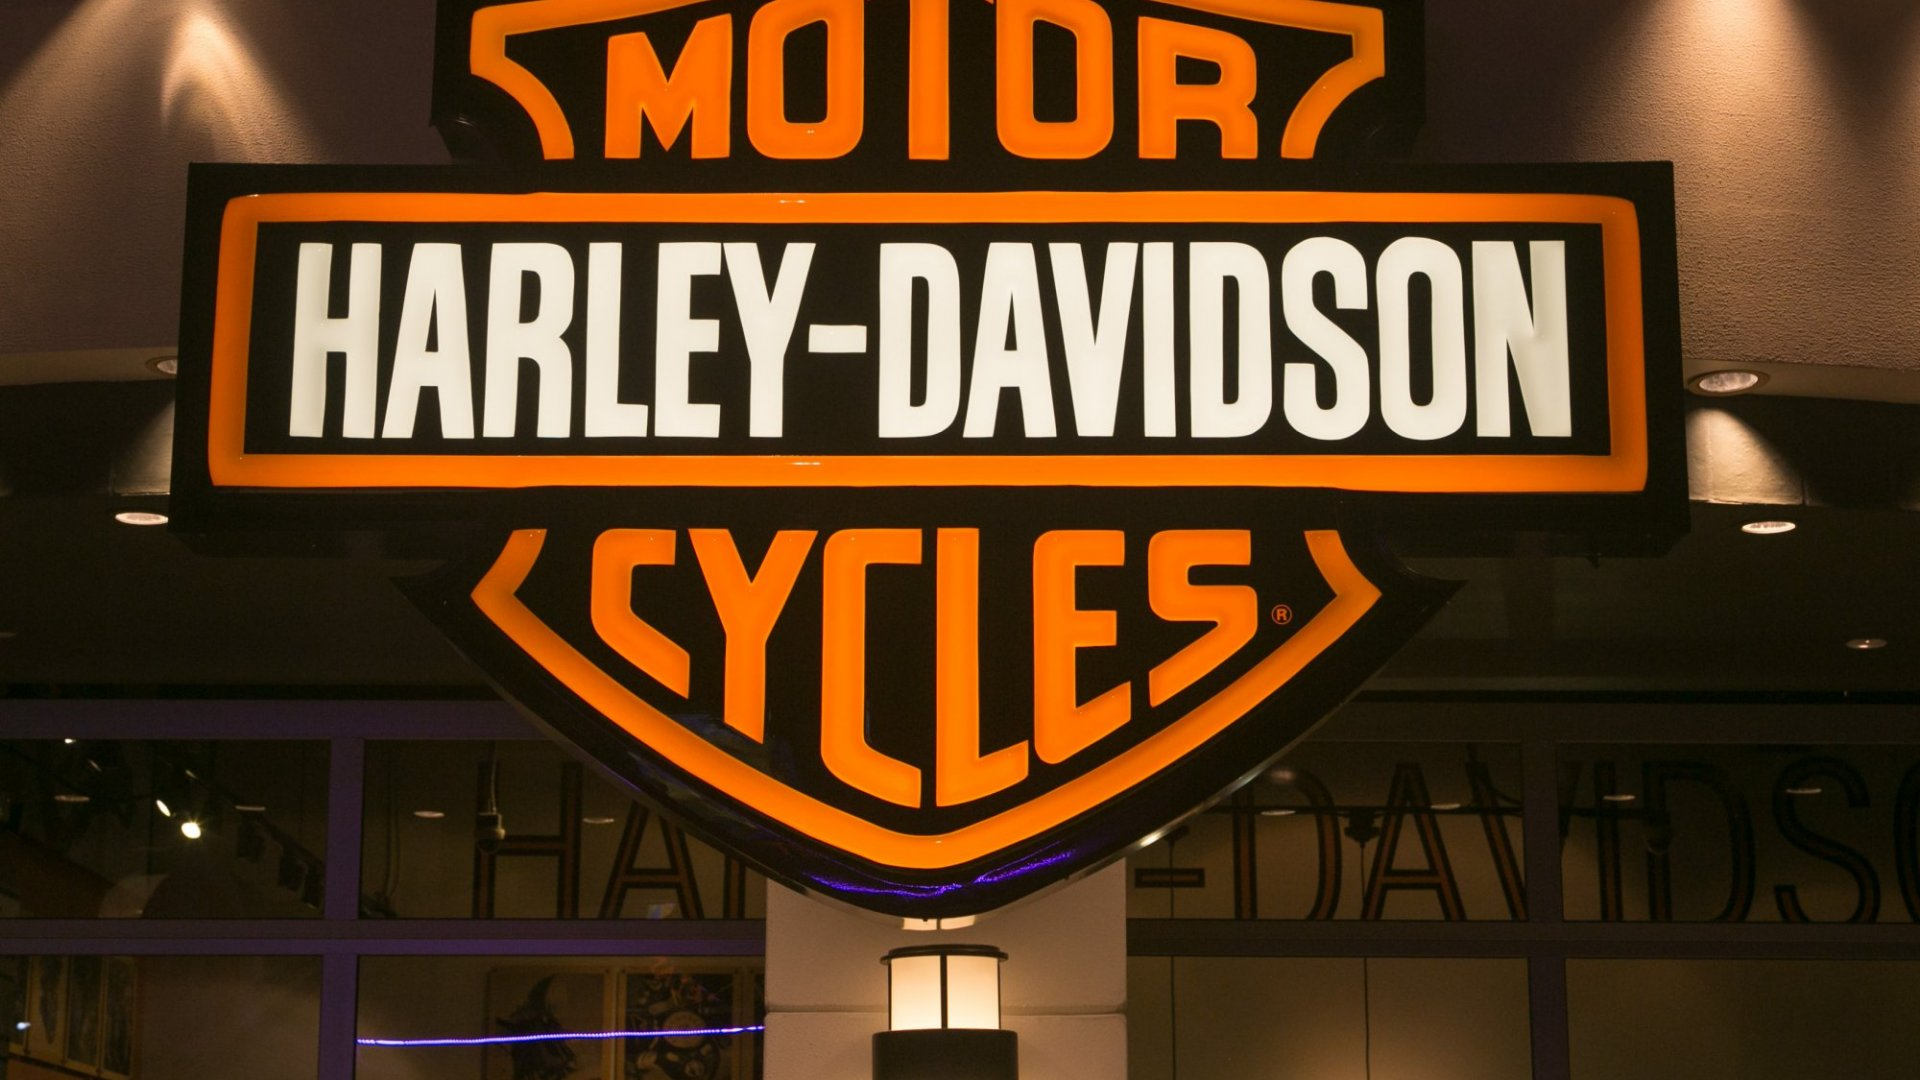 Harley-Davidson Pulls Off Marketing Stunt Ride With an Entire Town